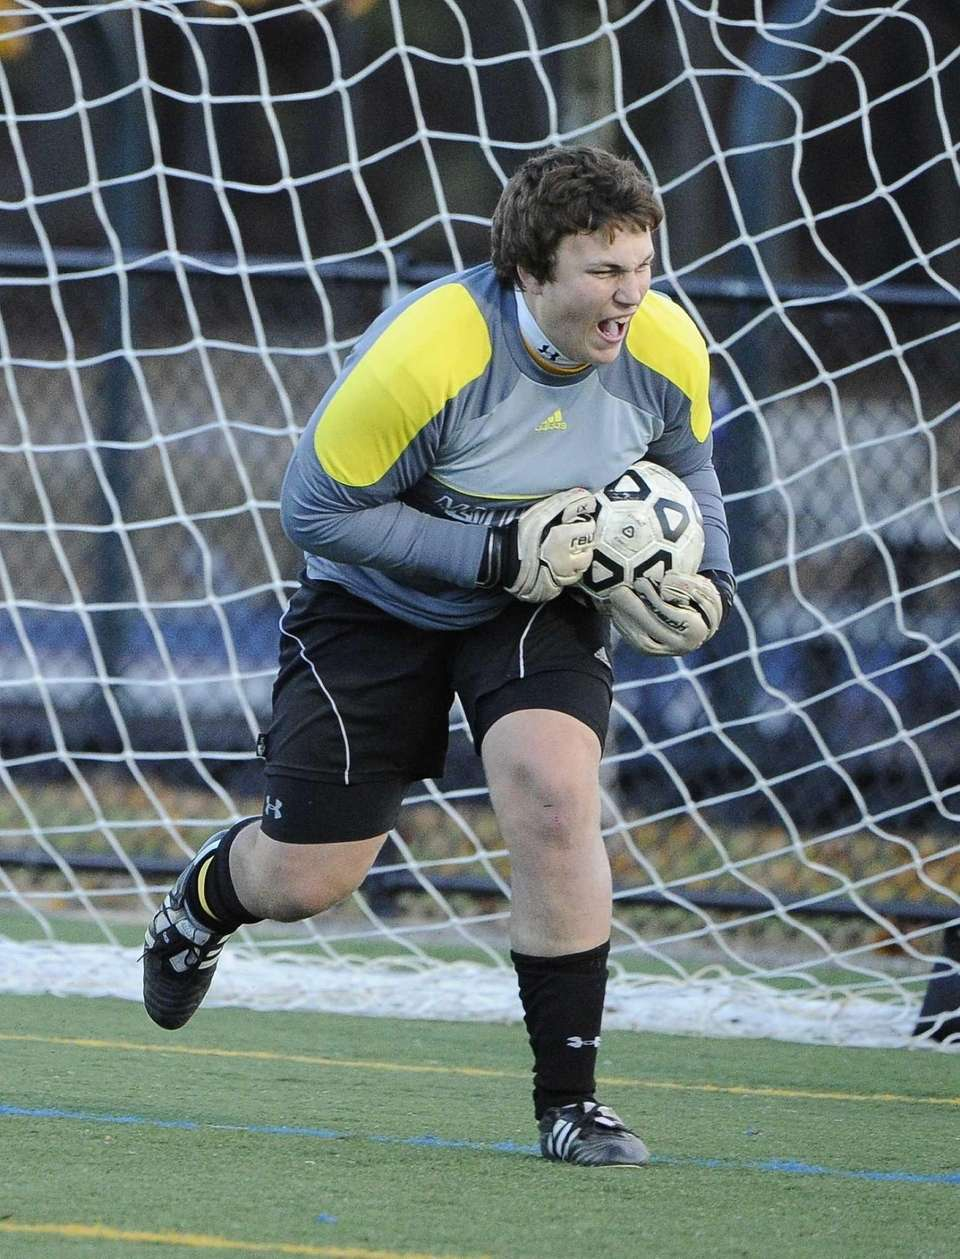 Mattituck goalkeeper Stephen Ostrowski makes a save against